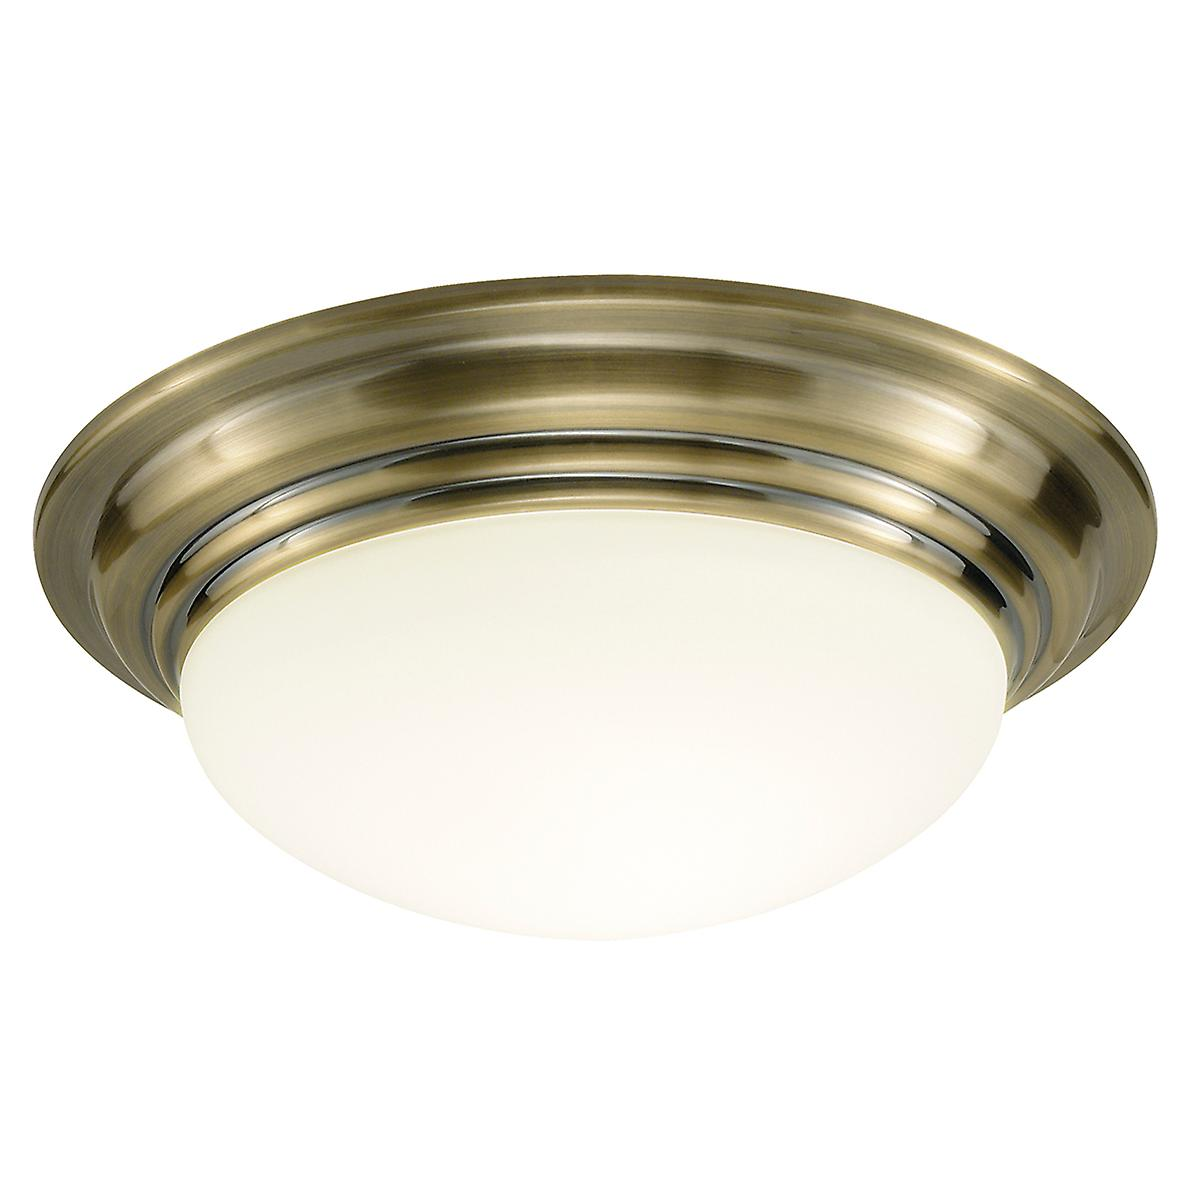 Dar BAR5075 Barclay Traditional Antique Bathroom Flush Ceiling Light - 38cm